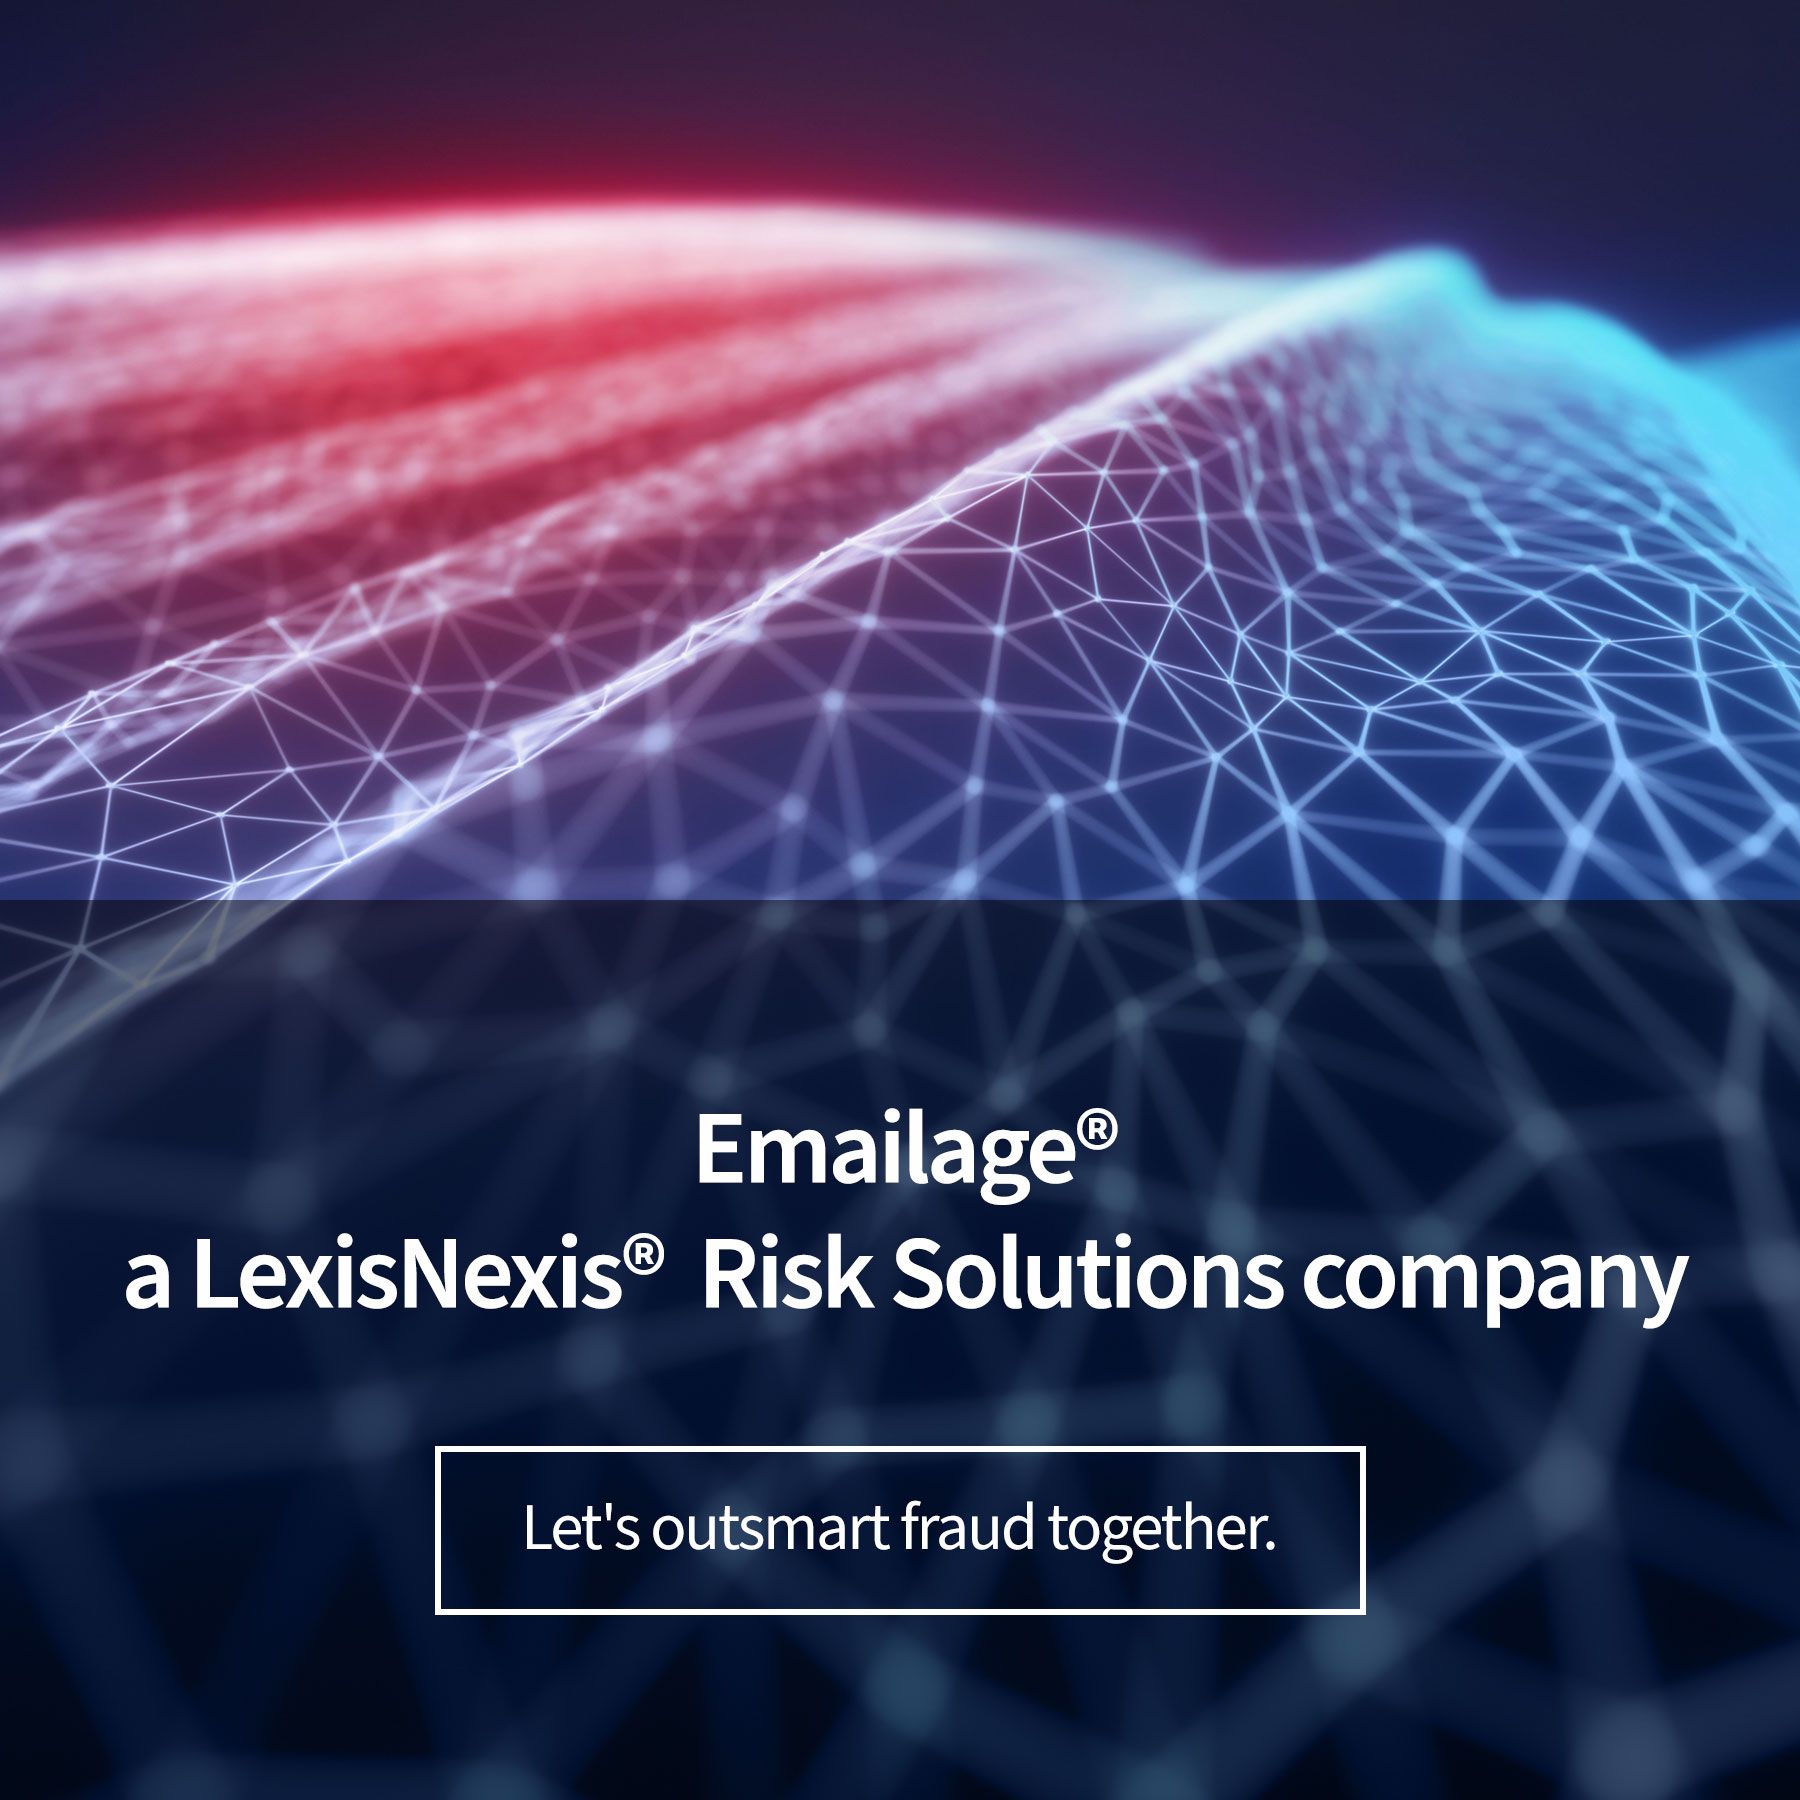 Emailage® a LexisNexis® Risk Solutions company Let's outsmart fraud together